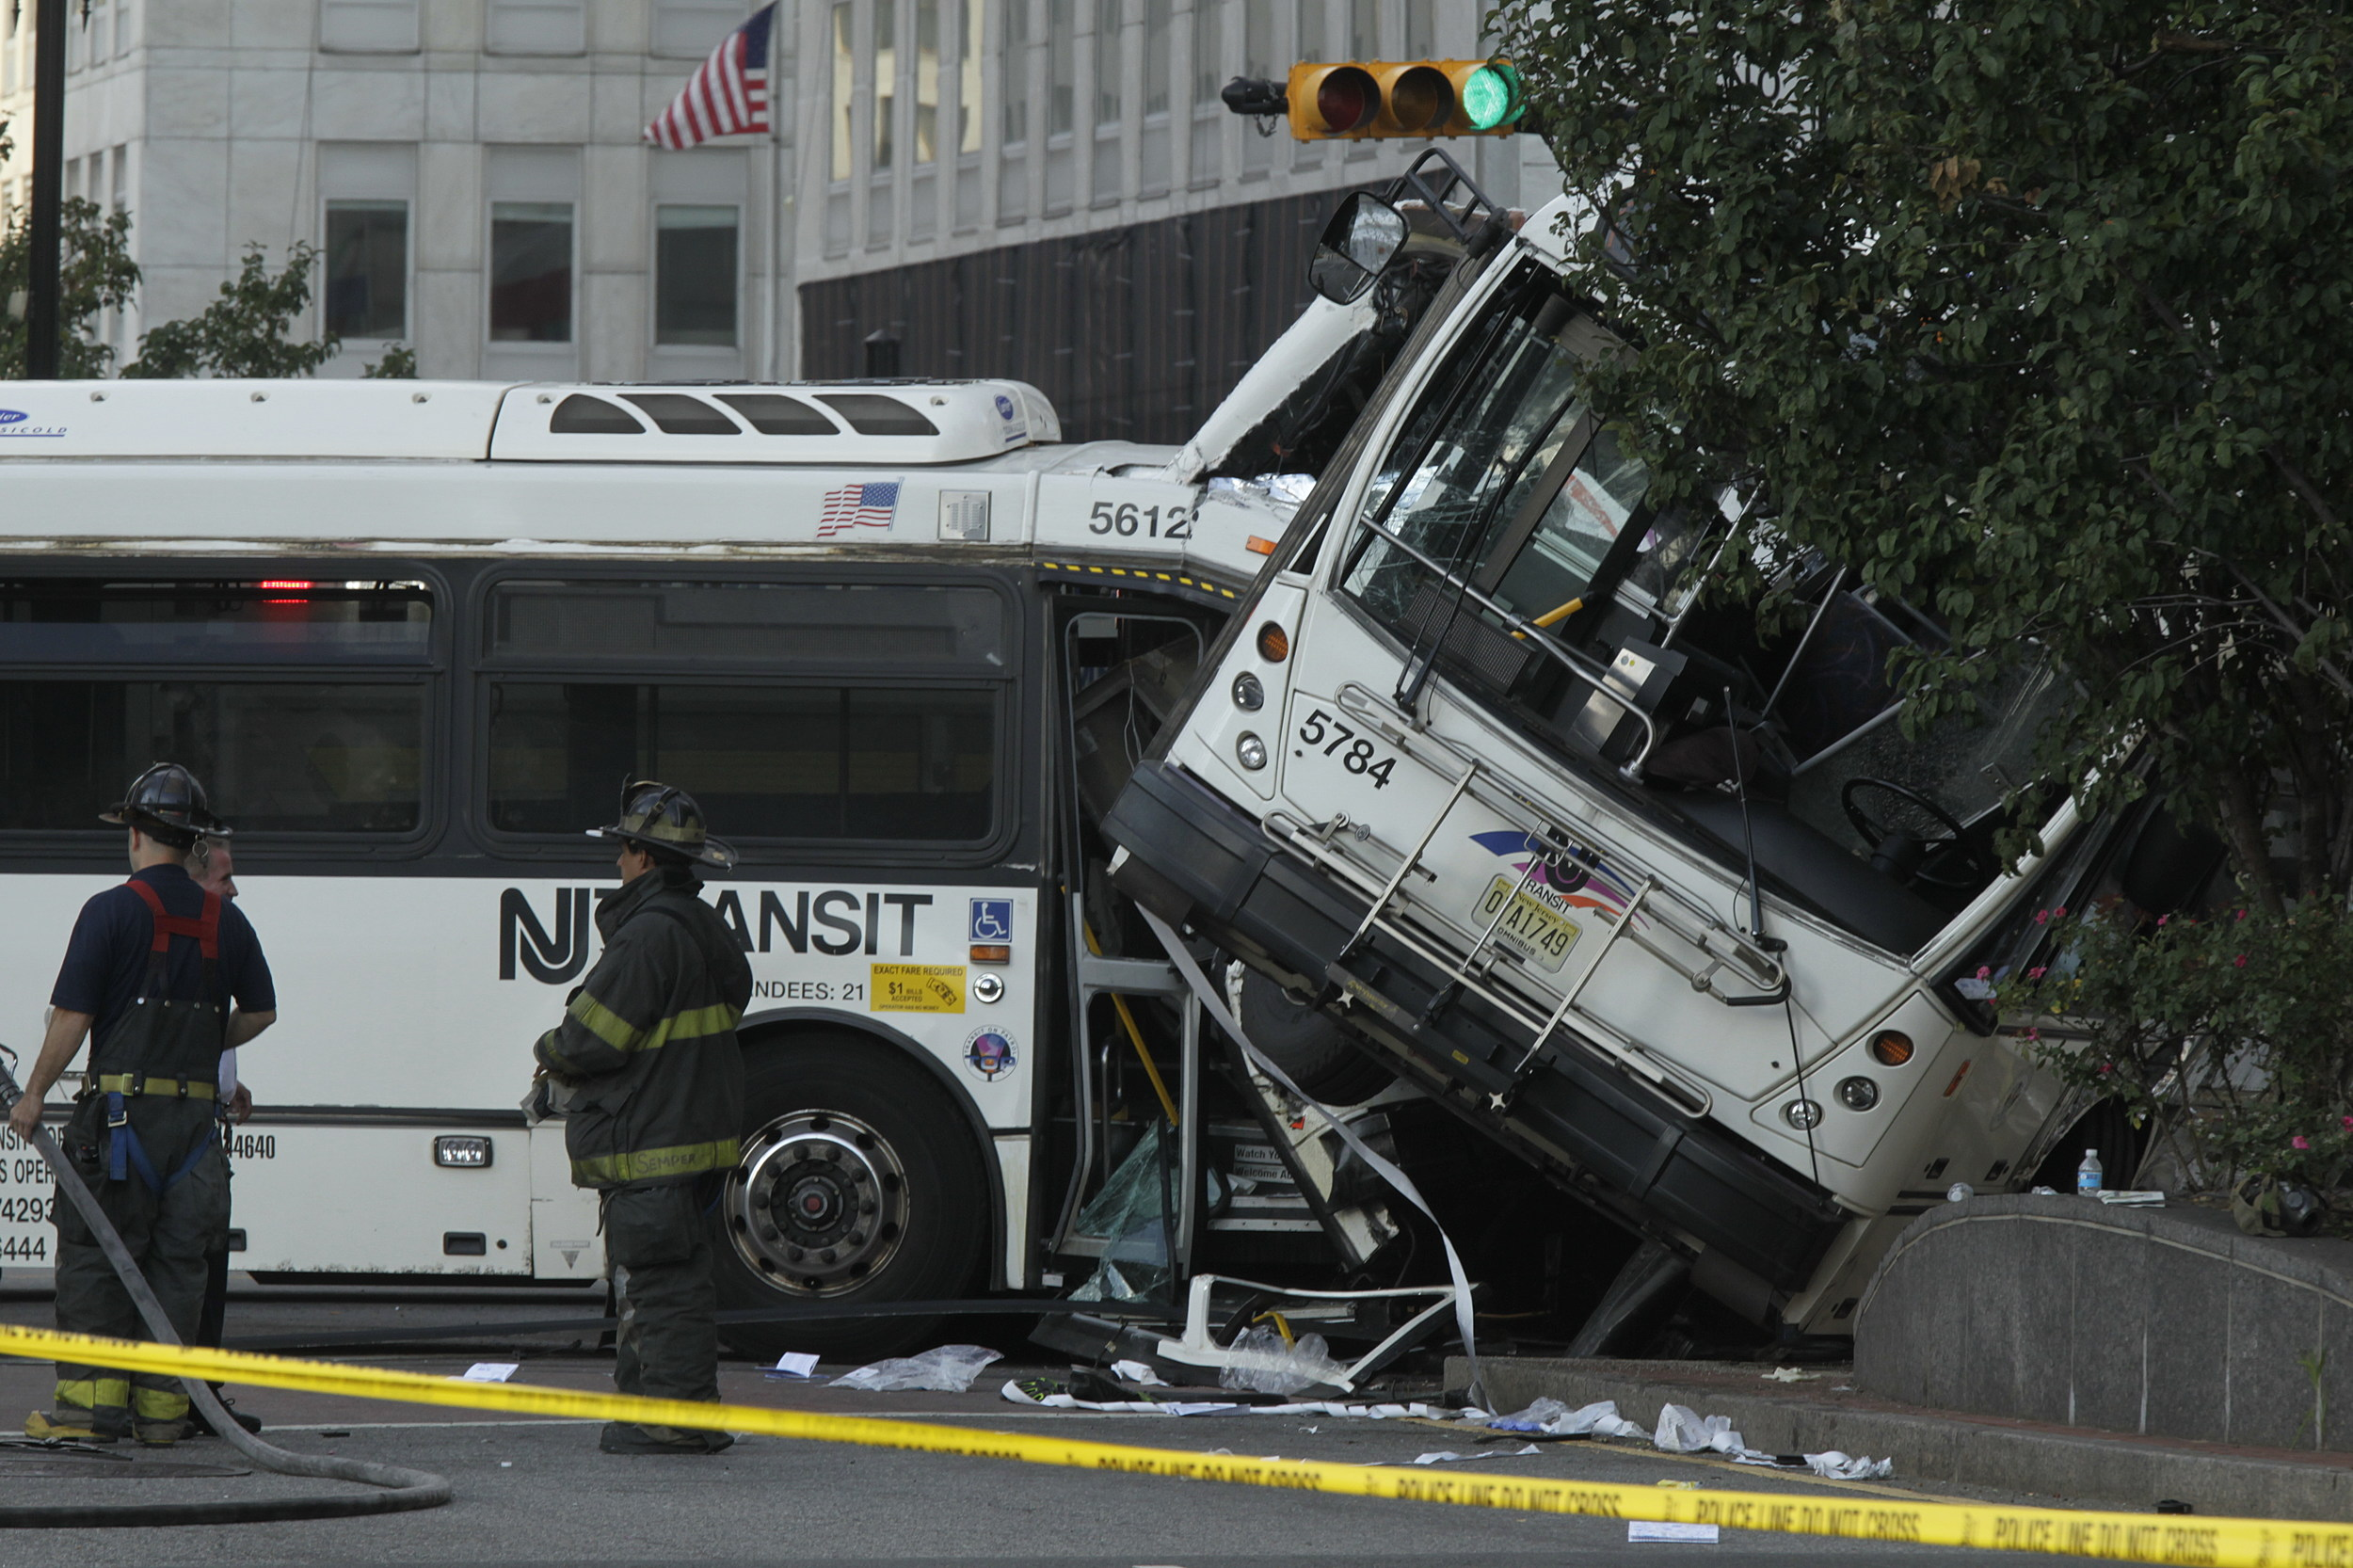 Transit Buses Crash in New Jersey; 1 Dead, 19 Injured